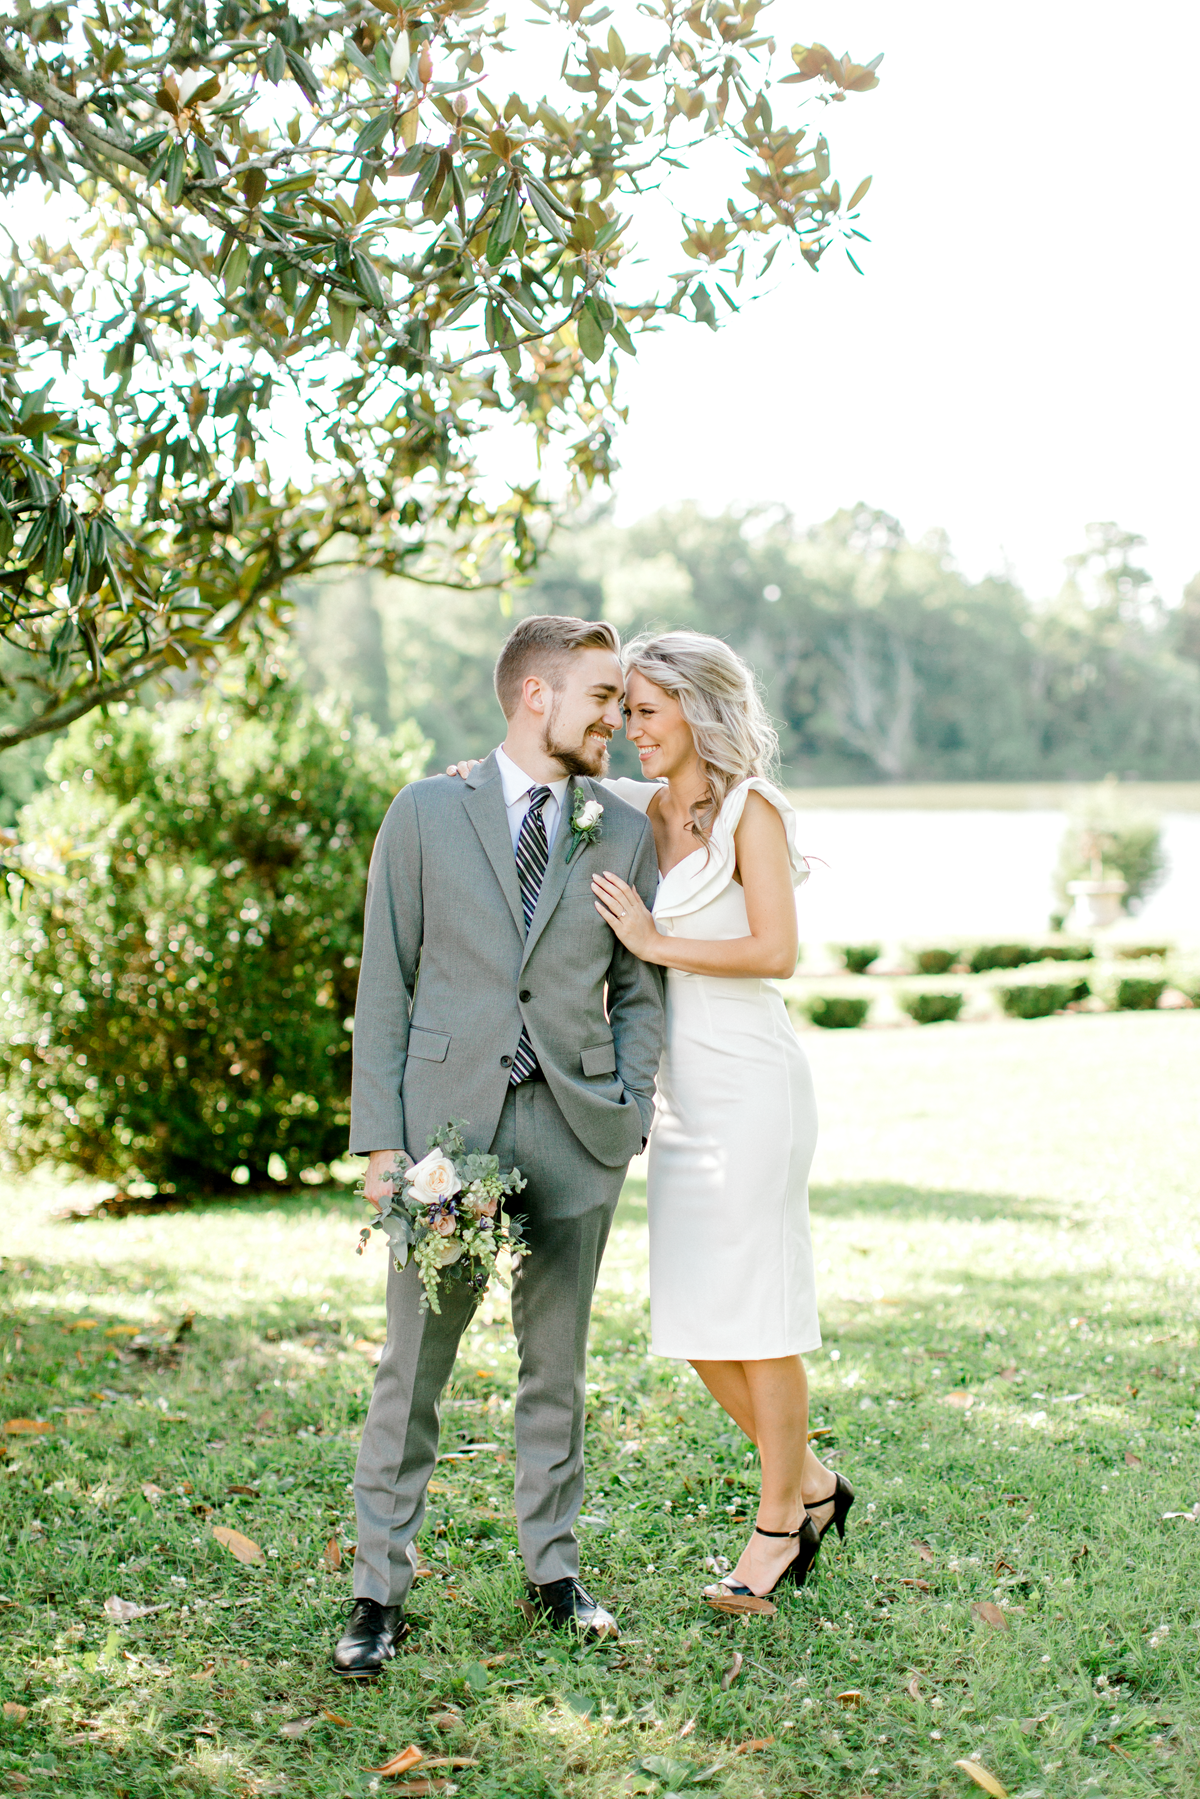 bride wearing little white dress smiling with her fiancé taking engagement photographs